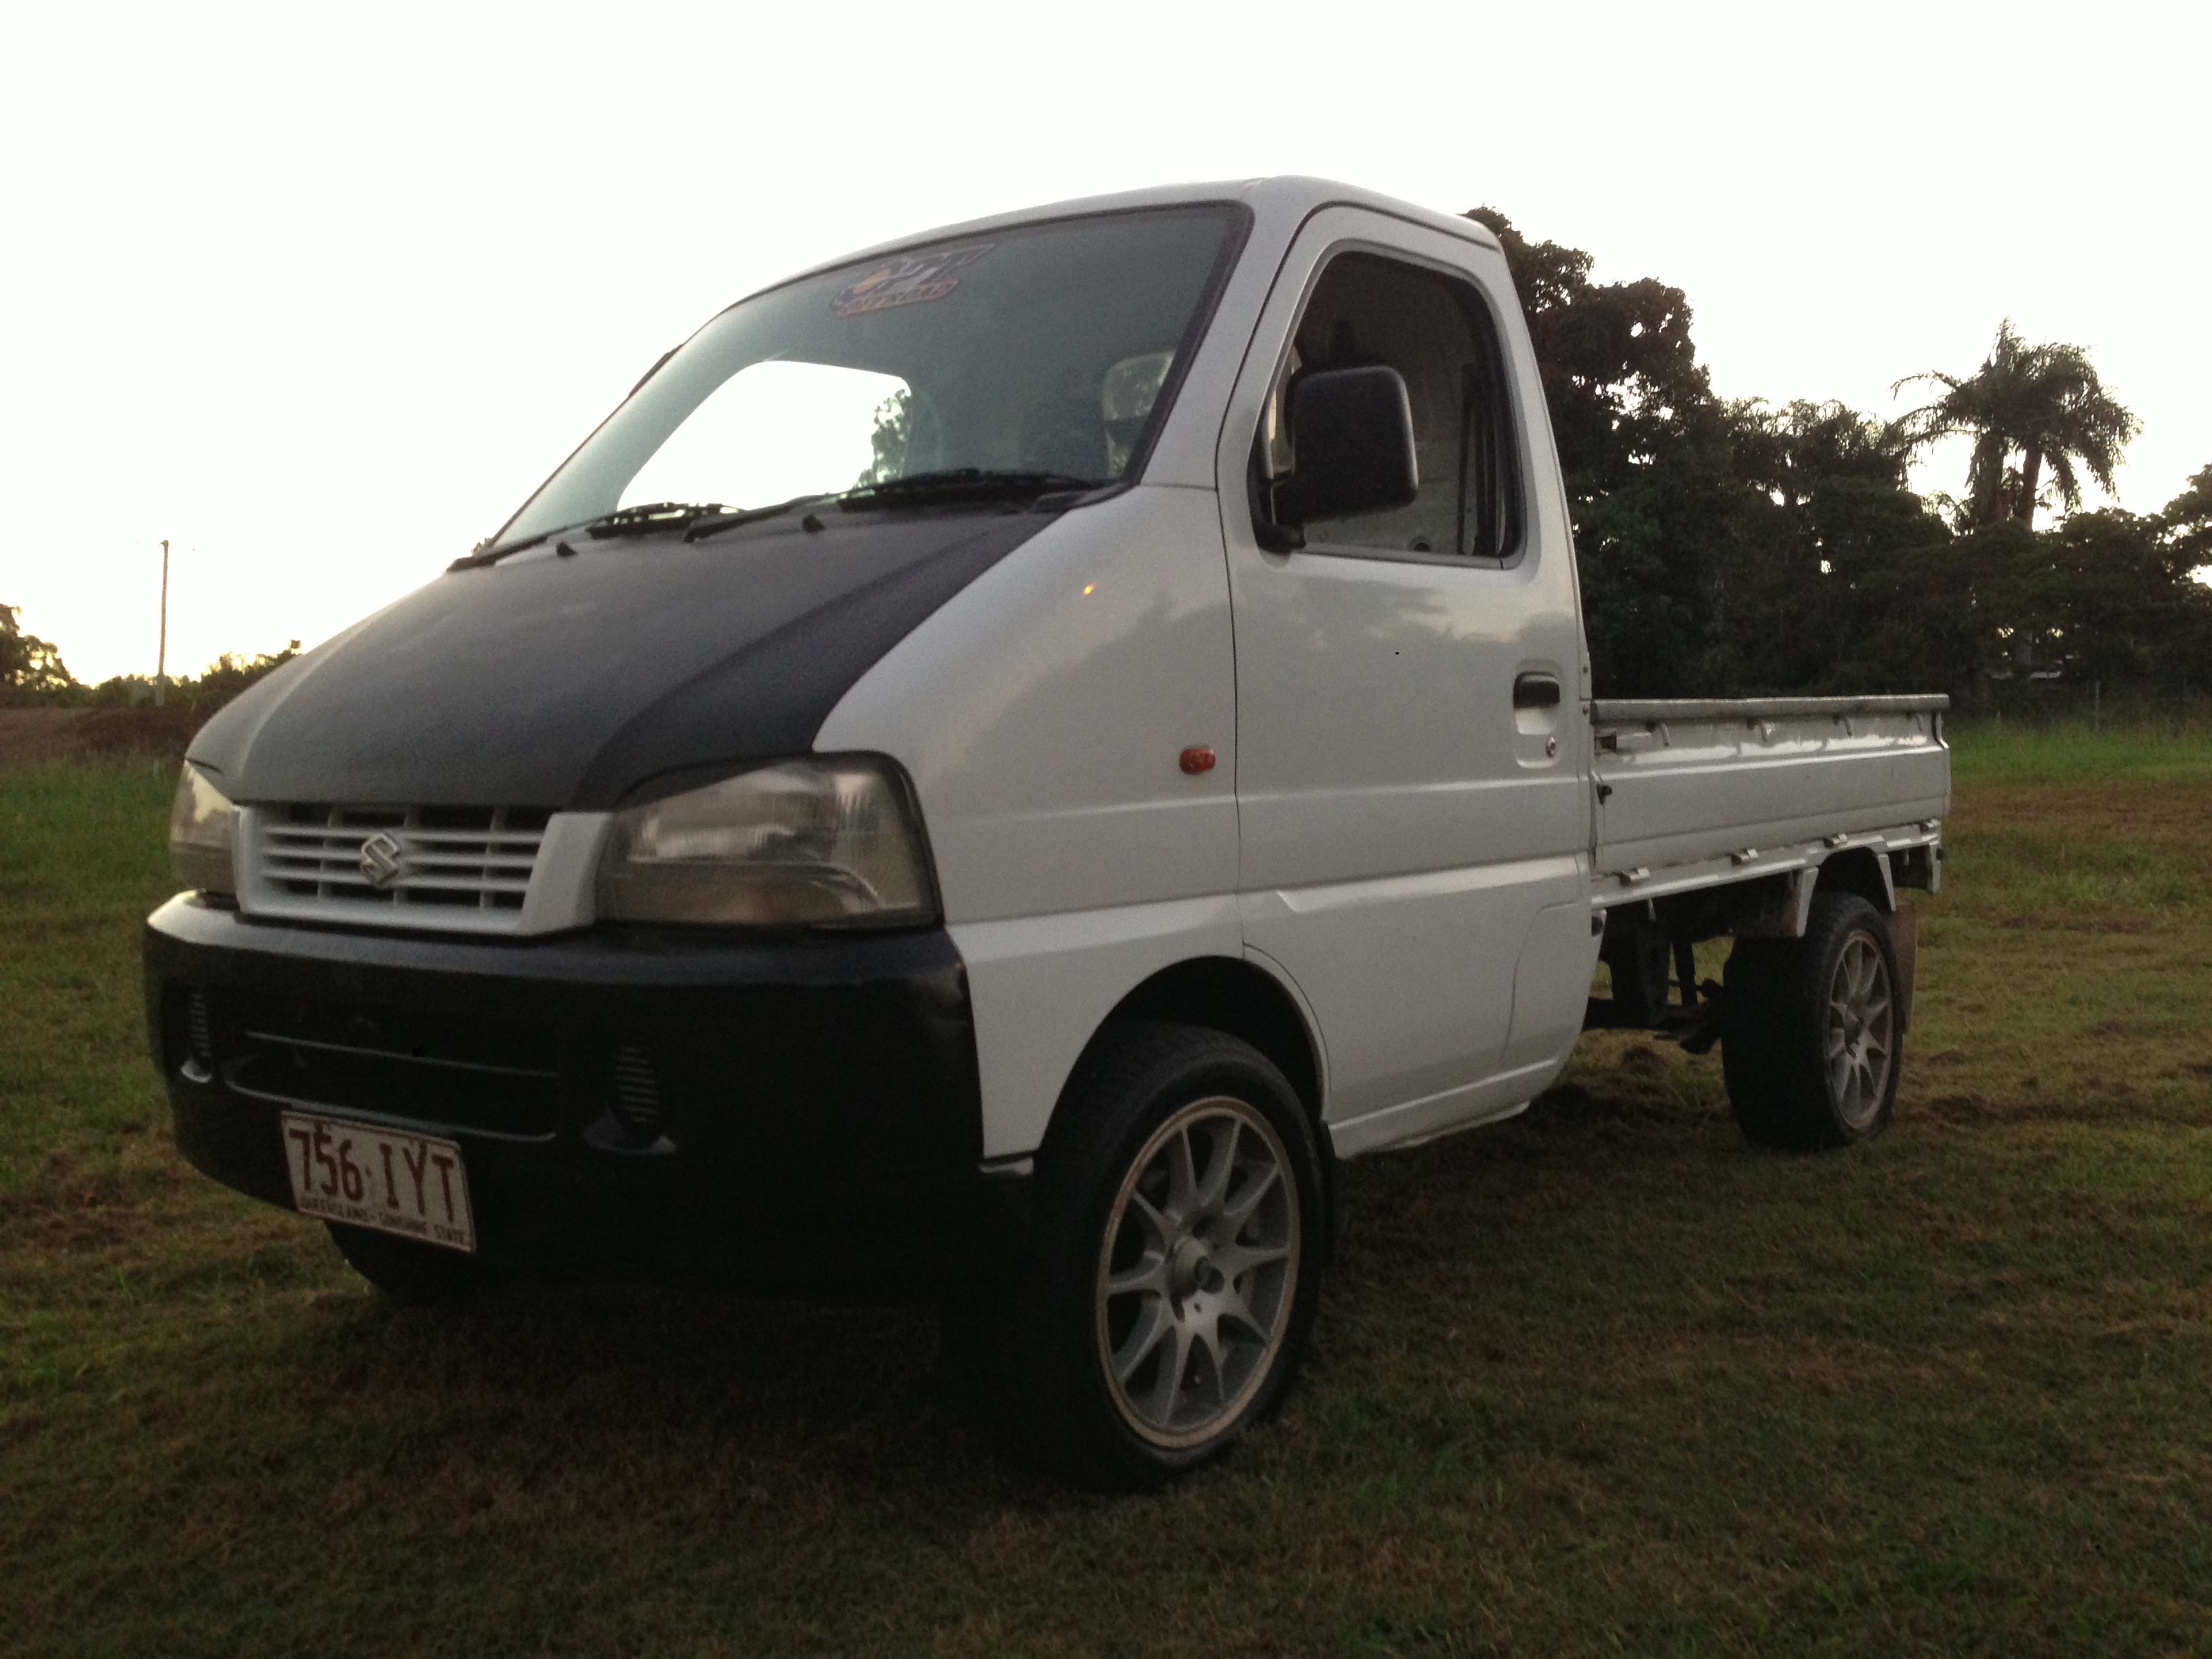 2000 Suzuki Carry Truck (4X4)